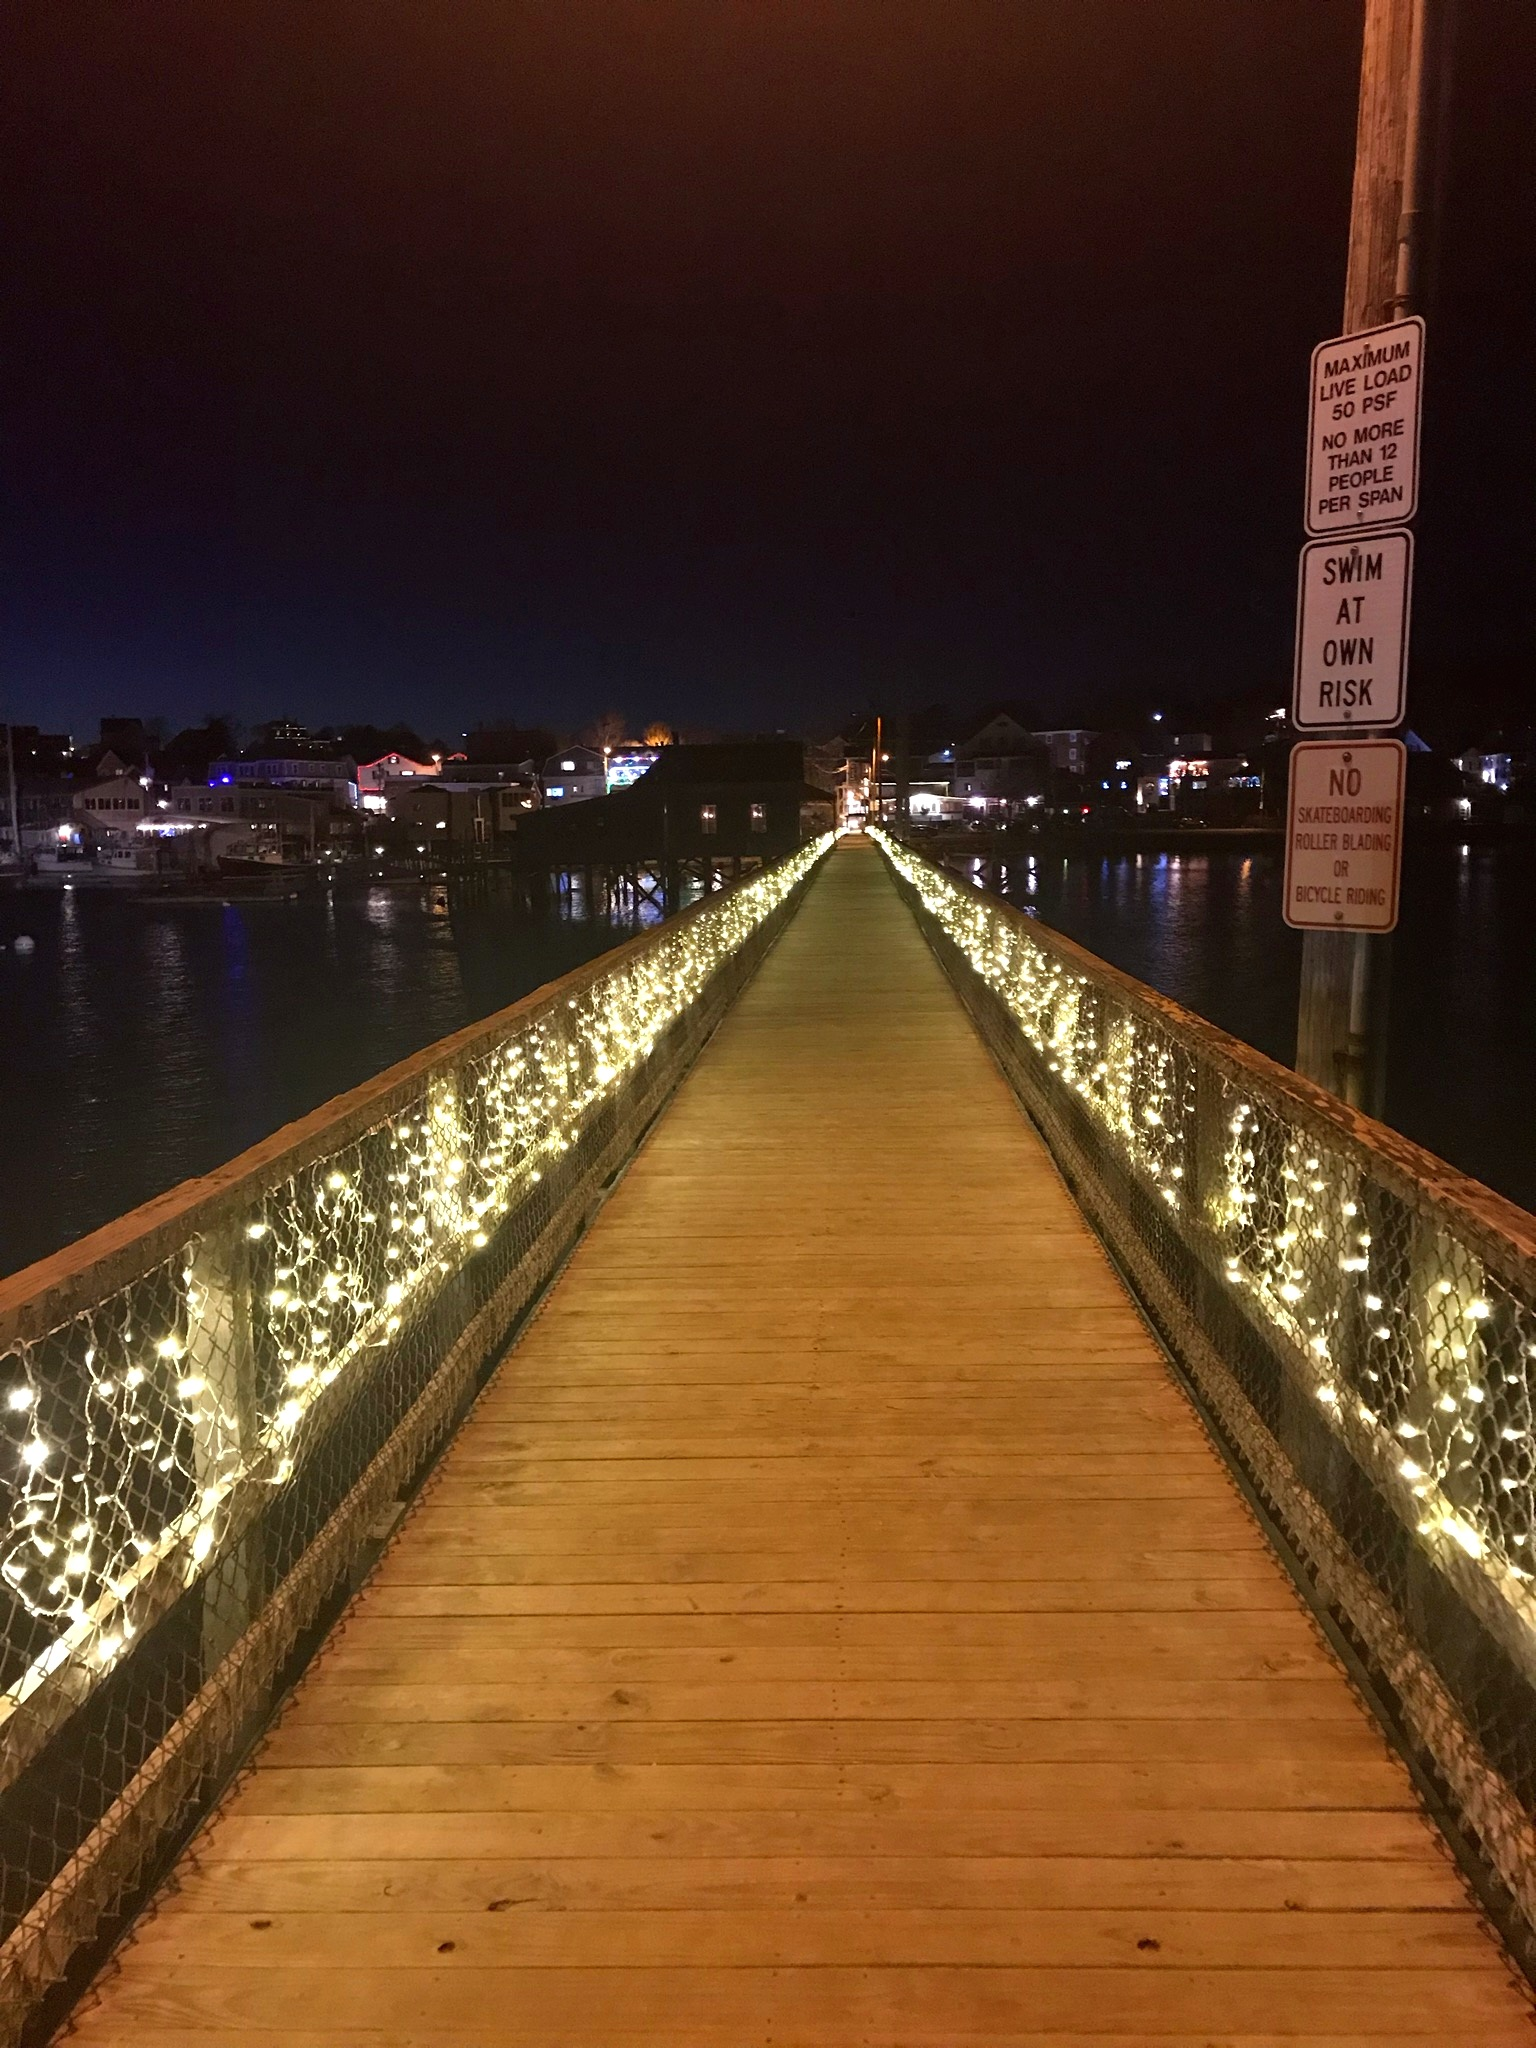 The beautifully lit path of the footbridge